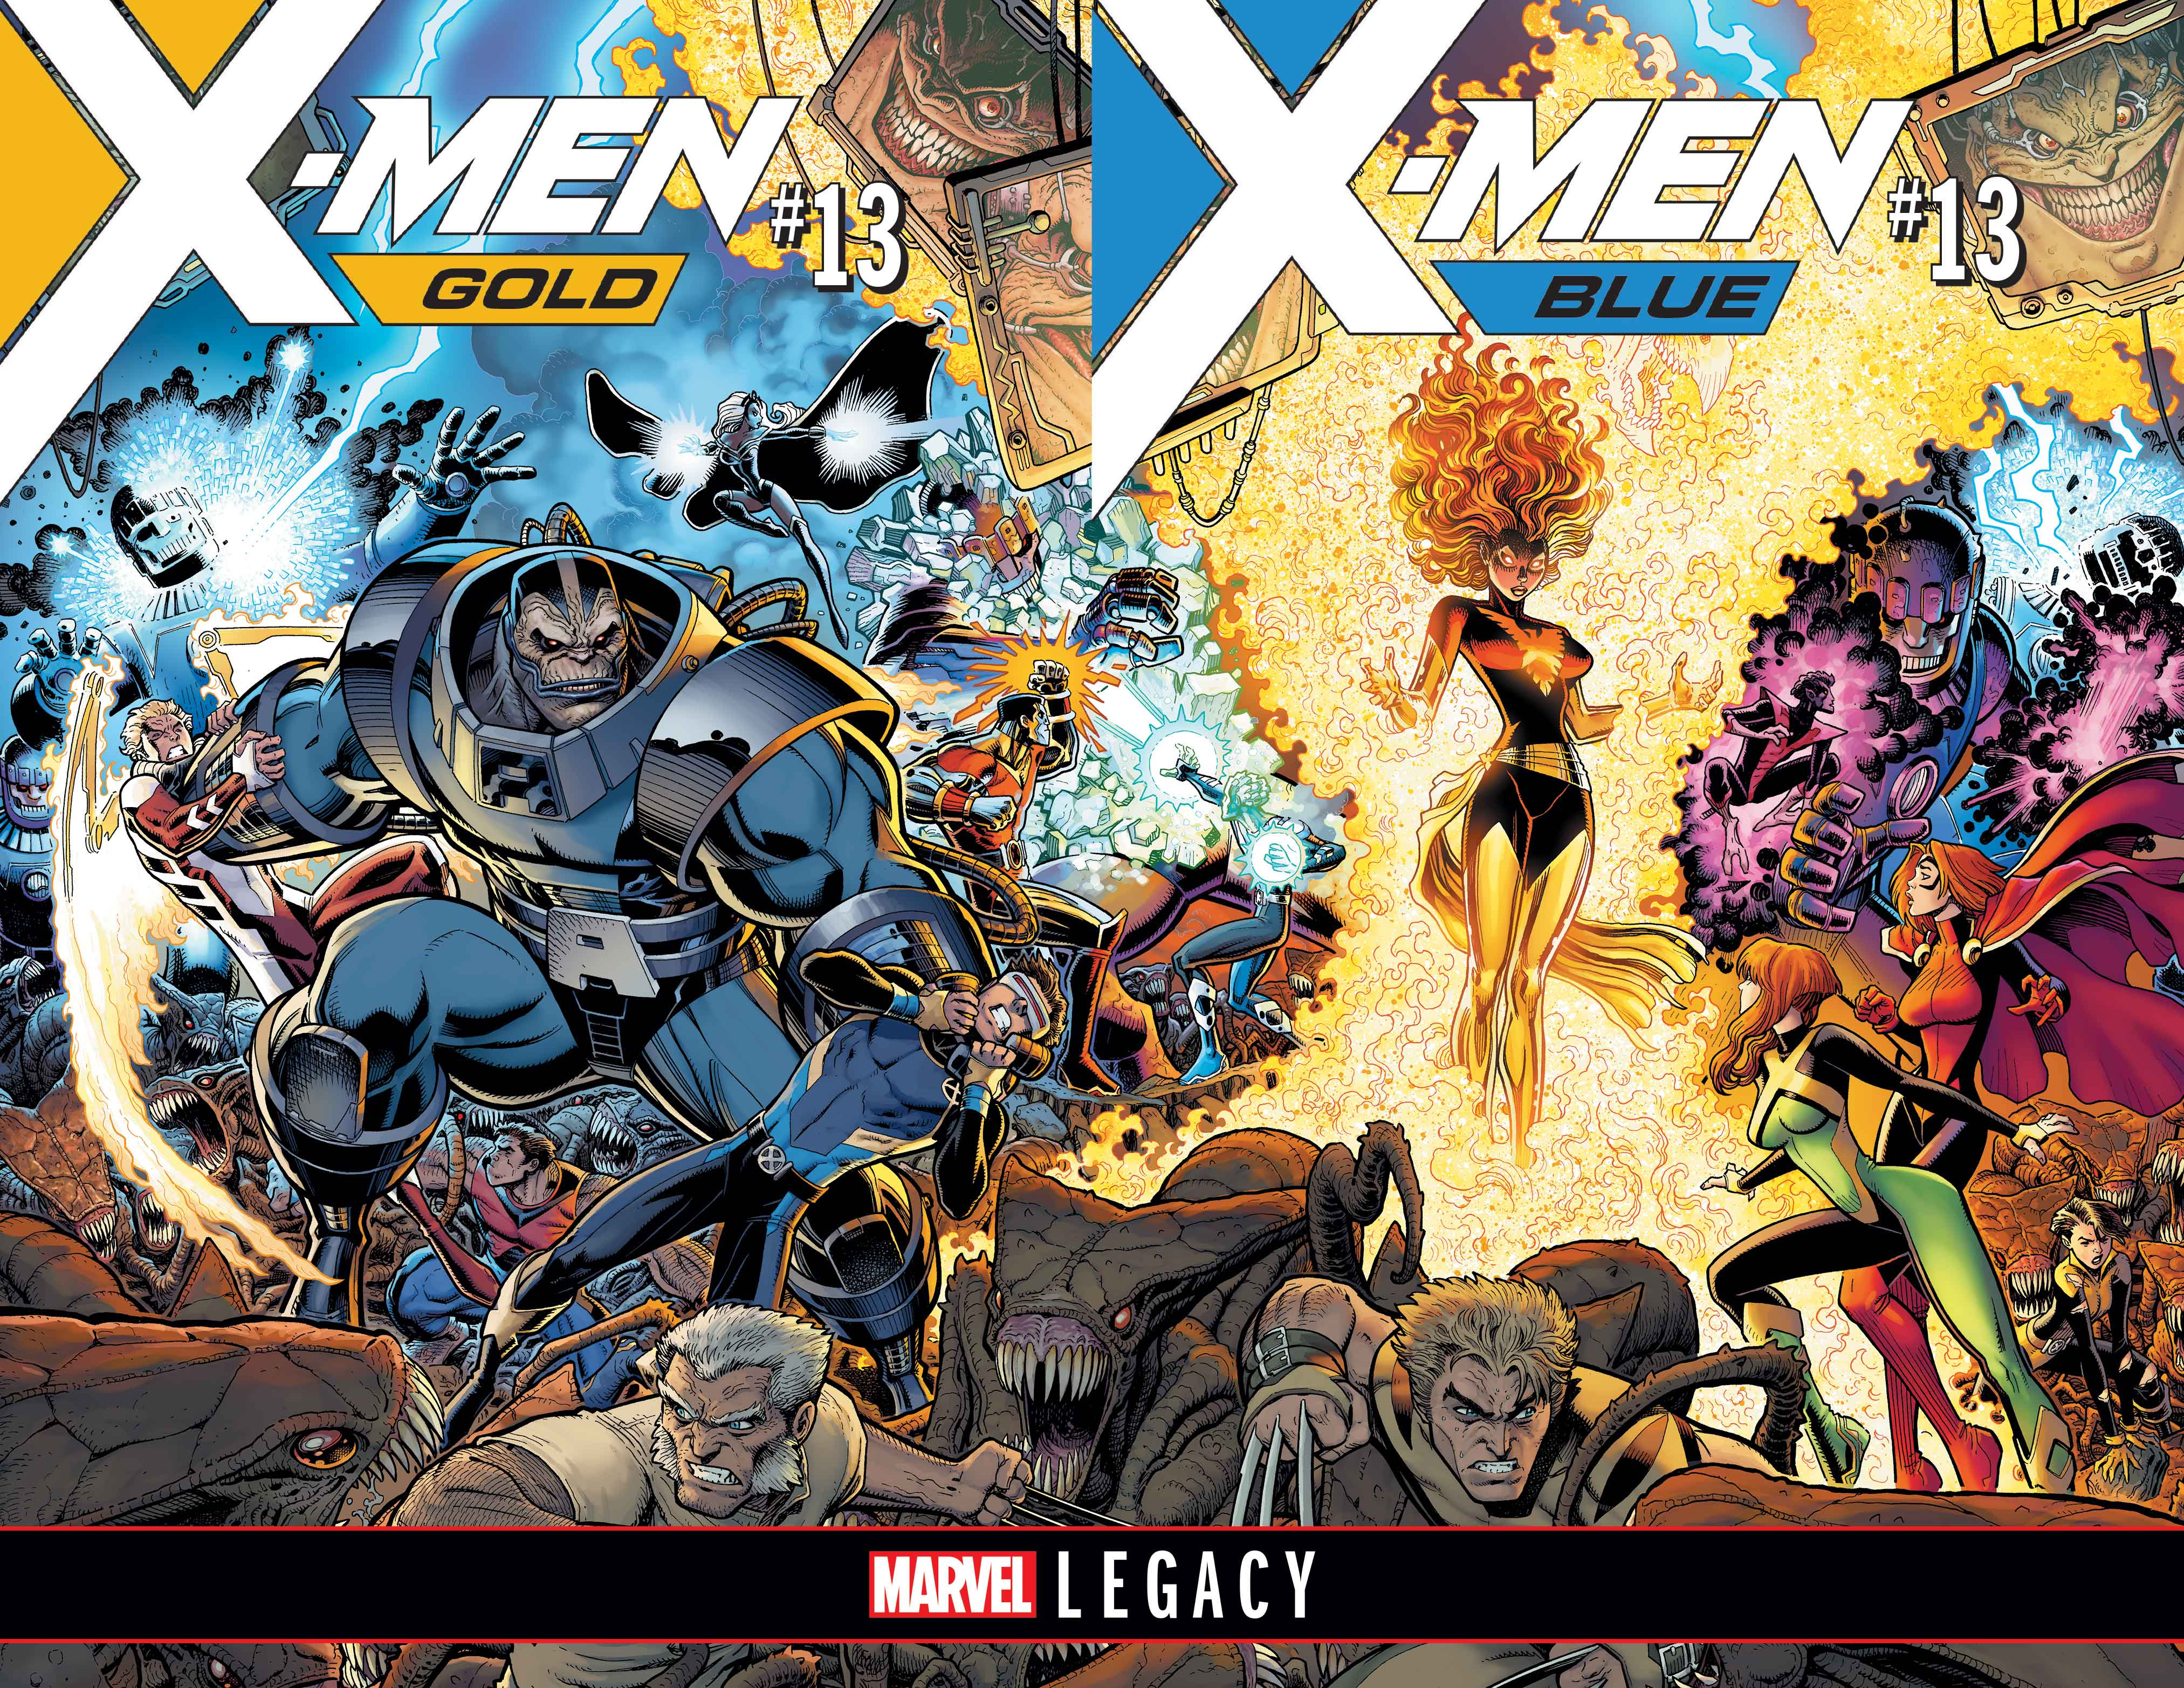 marvel legacy unveils new series falcon x men blue and gold and